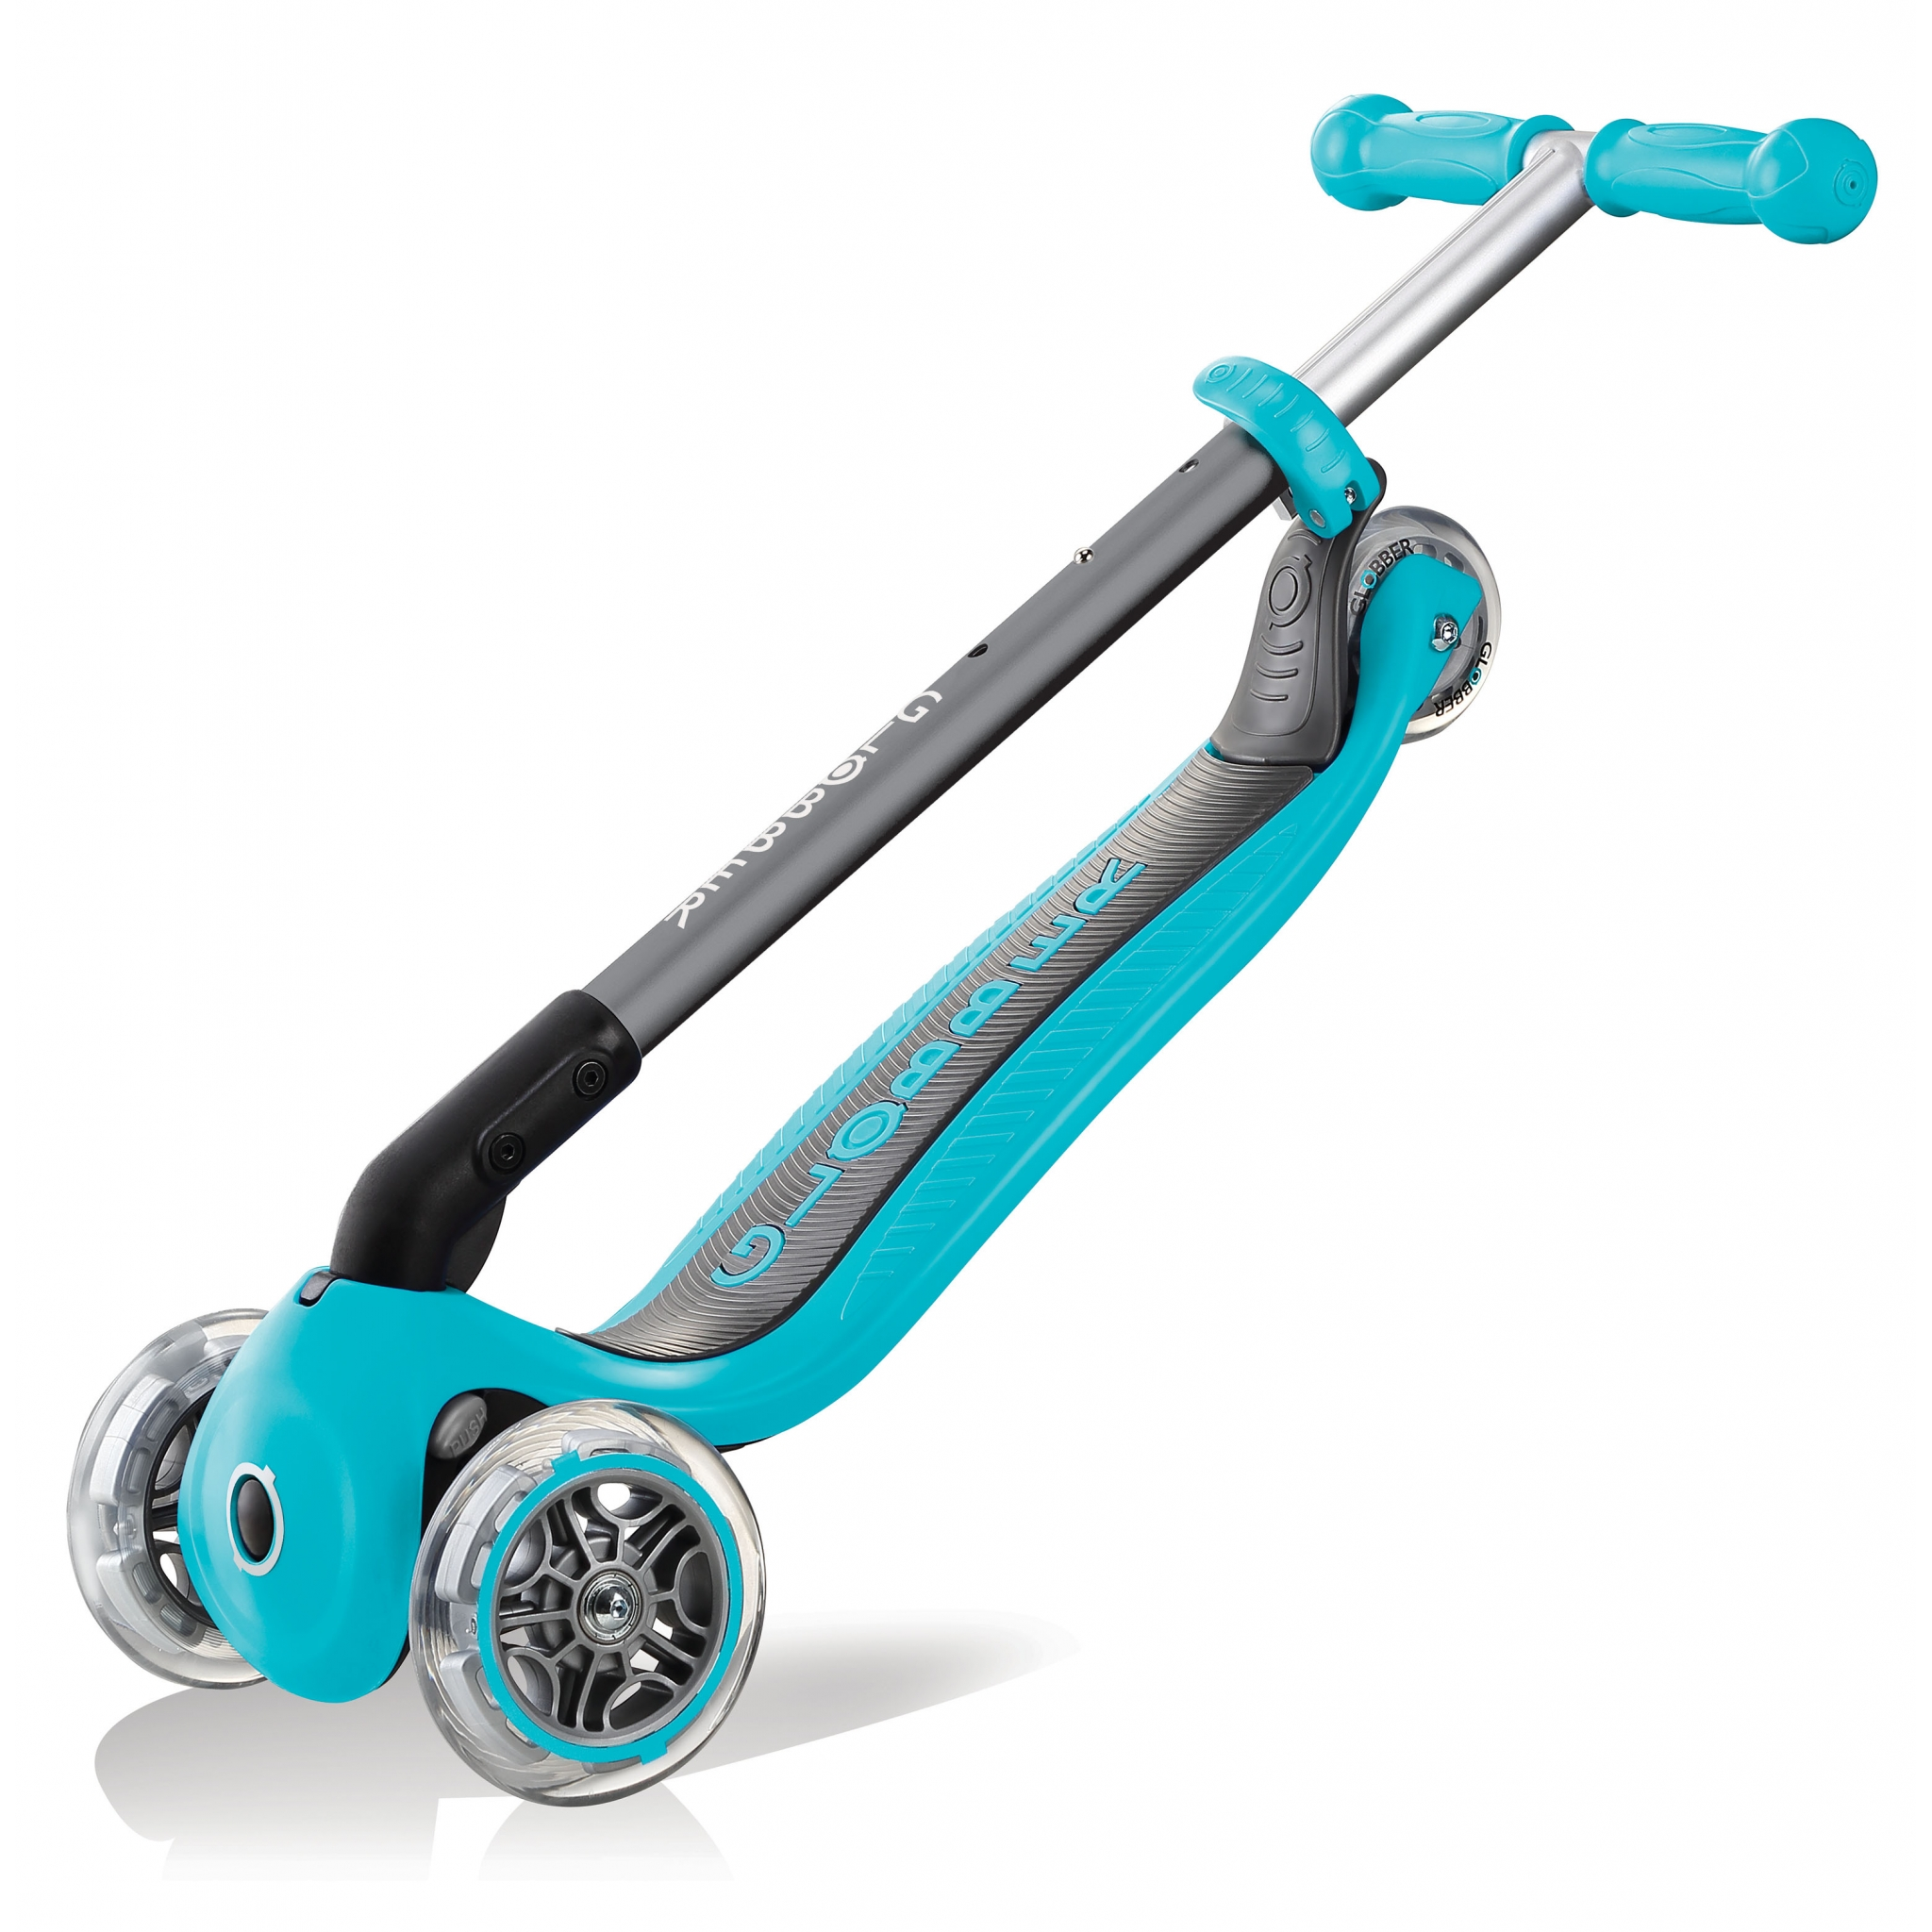 PRIMO-FOLDABLE-3-wheel-foldable-scooter-for-kids-trolley-mode-teal